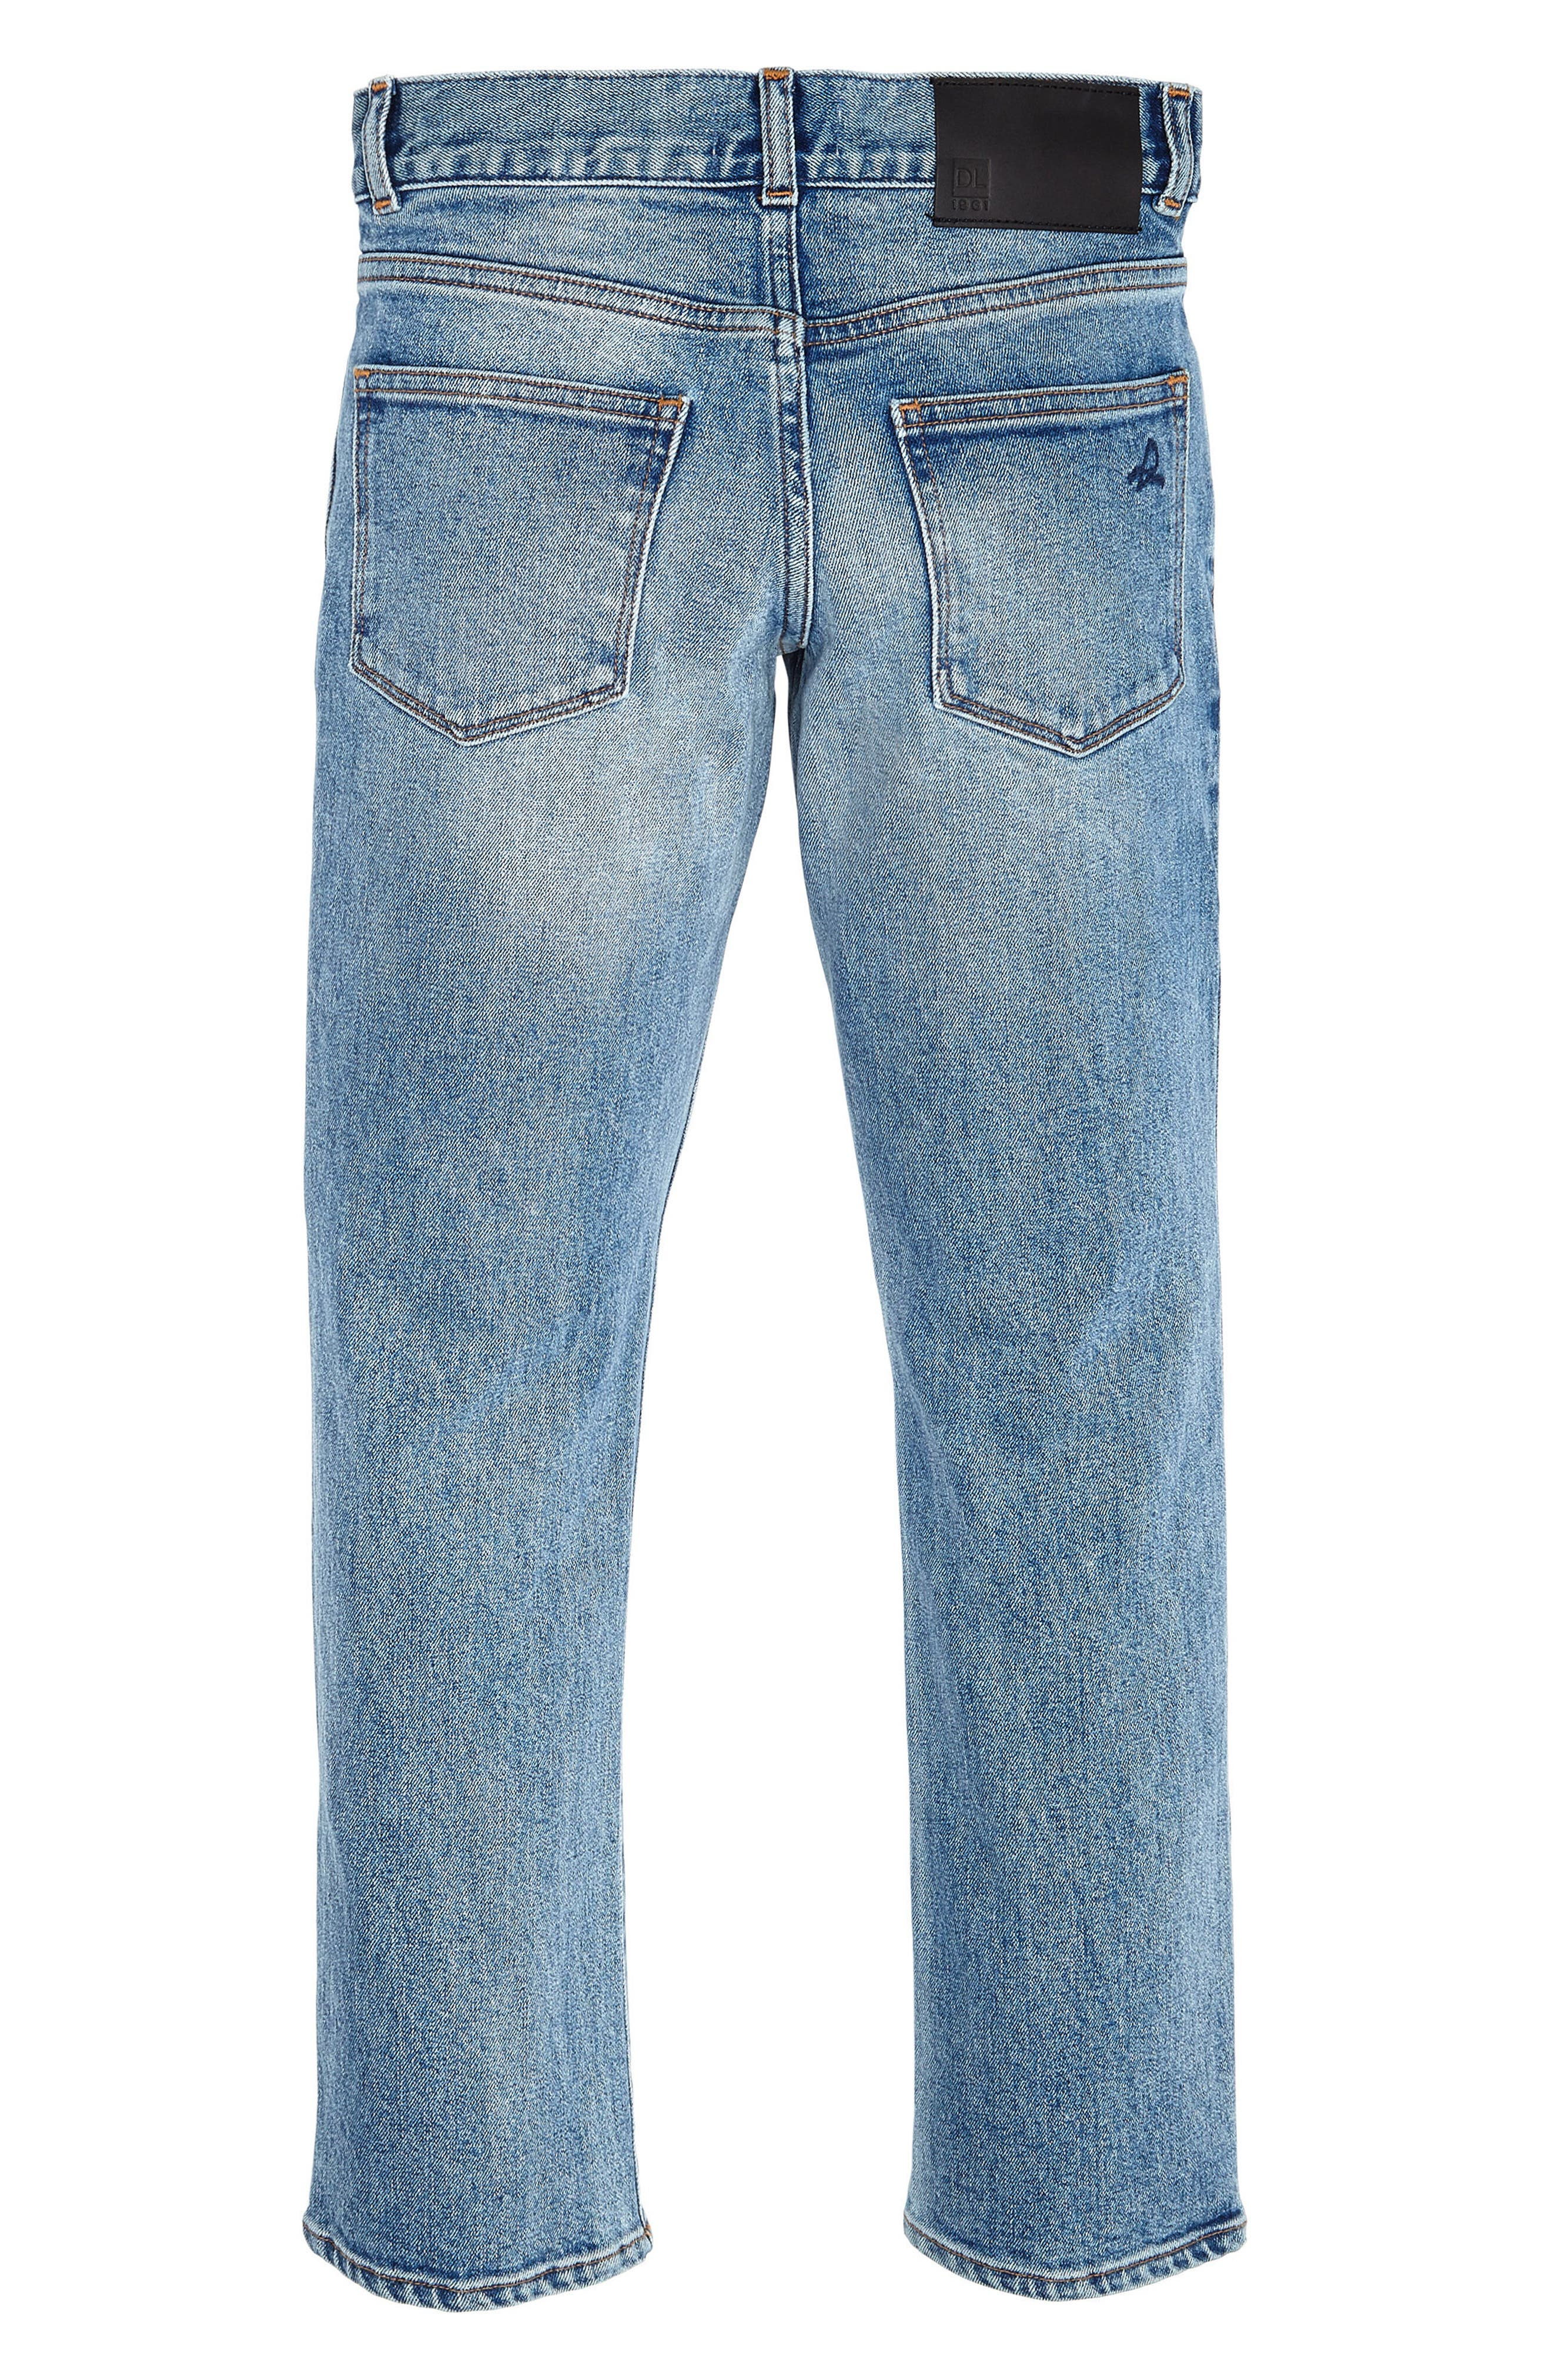 Brady Slim Fit Jeans,                             Alternate thumbnail 2, color,                             430